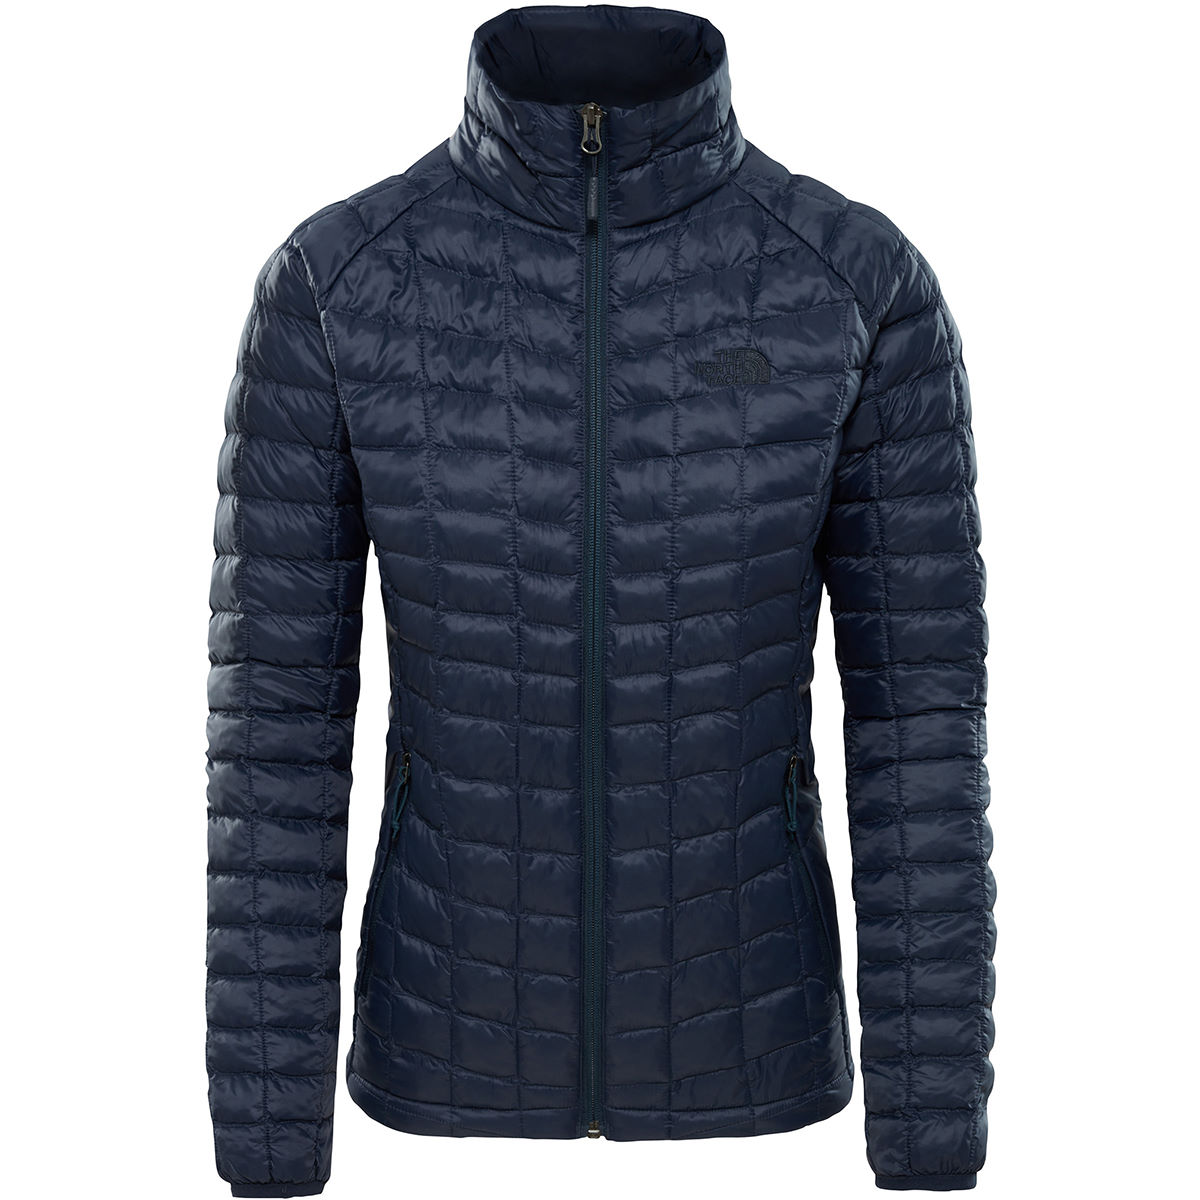 The North Face The North Face Women's ThermoBall™ Sport Jacket   Jackets